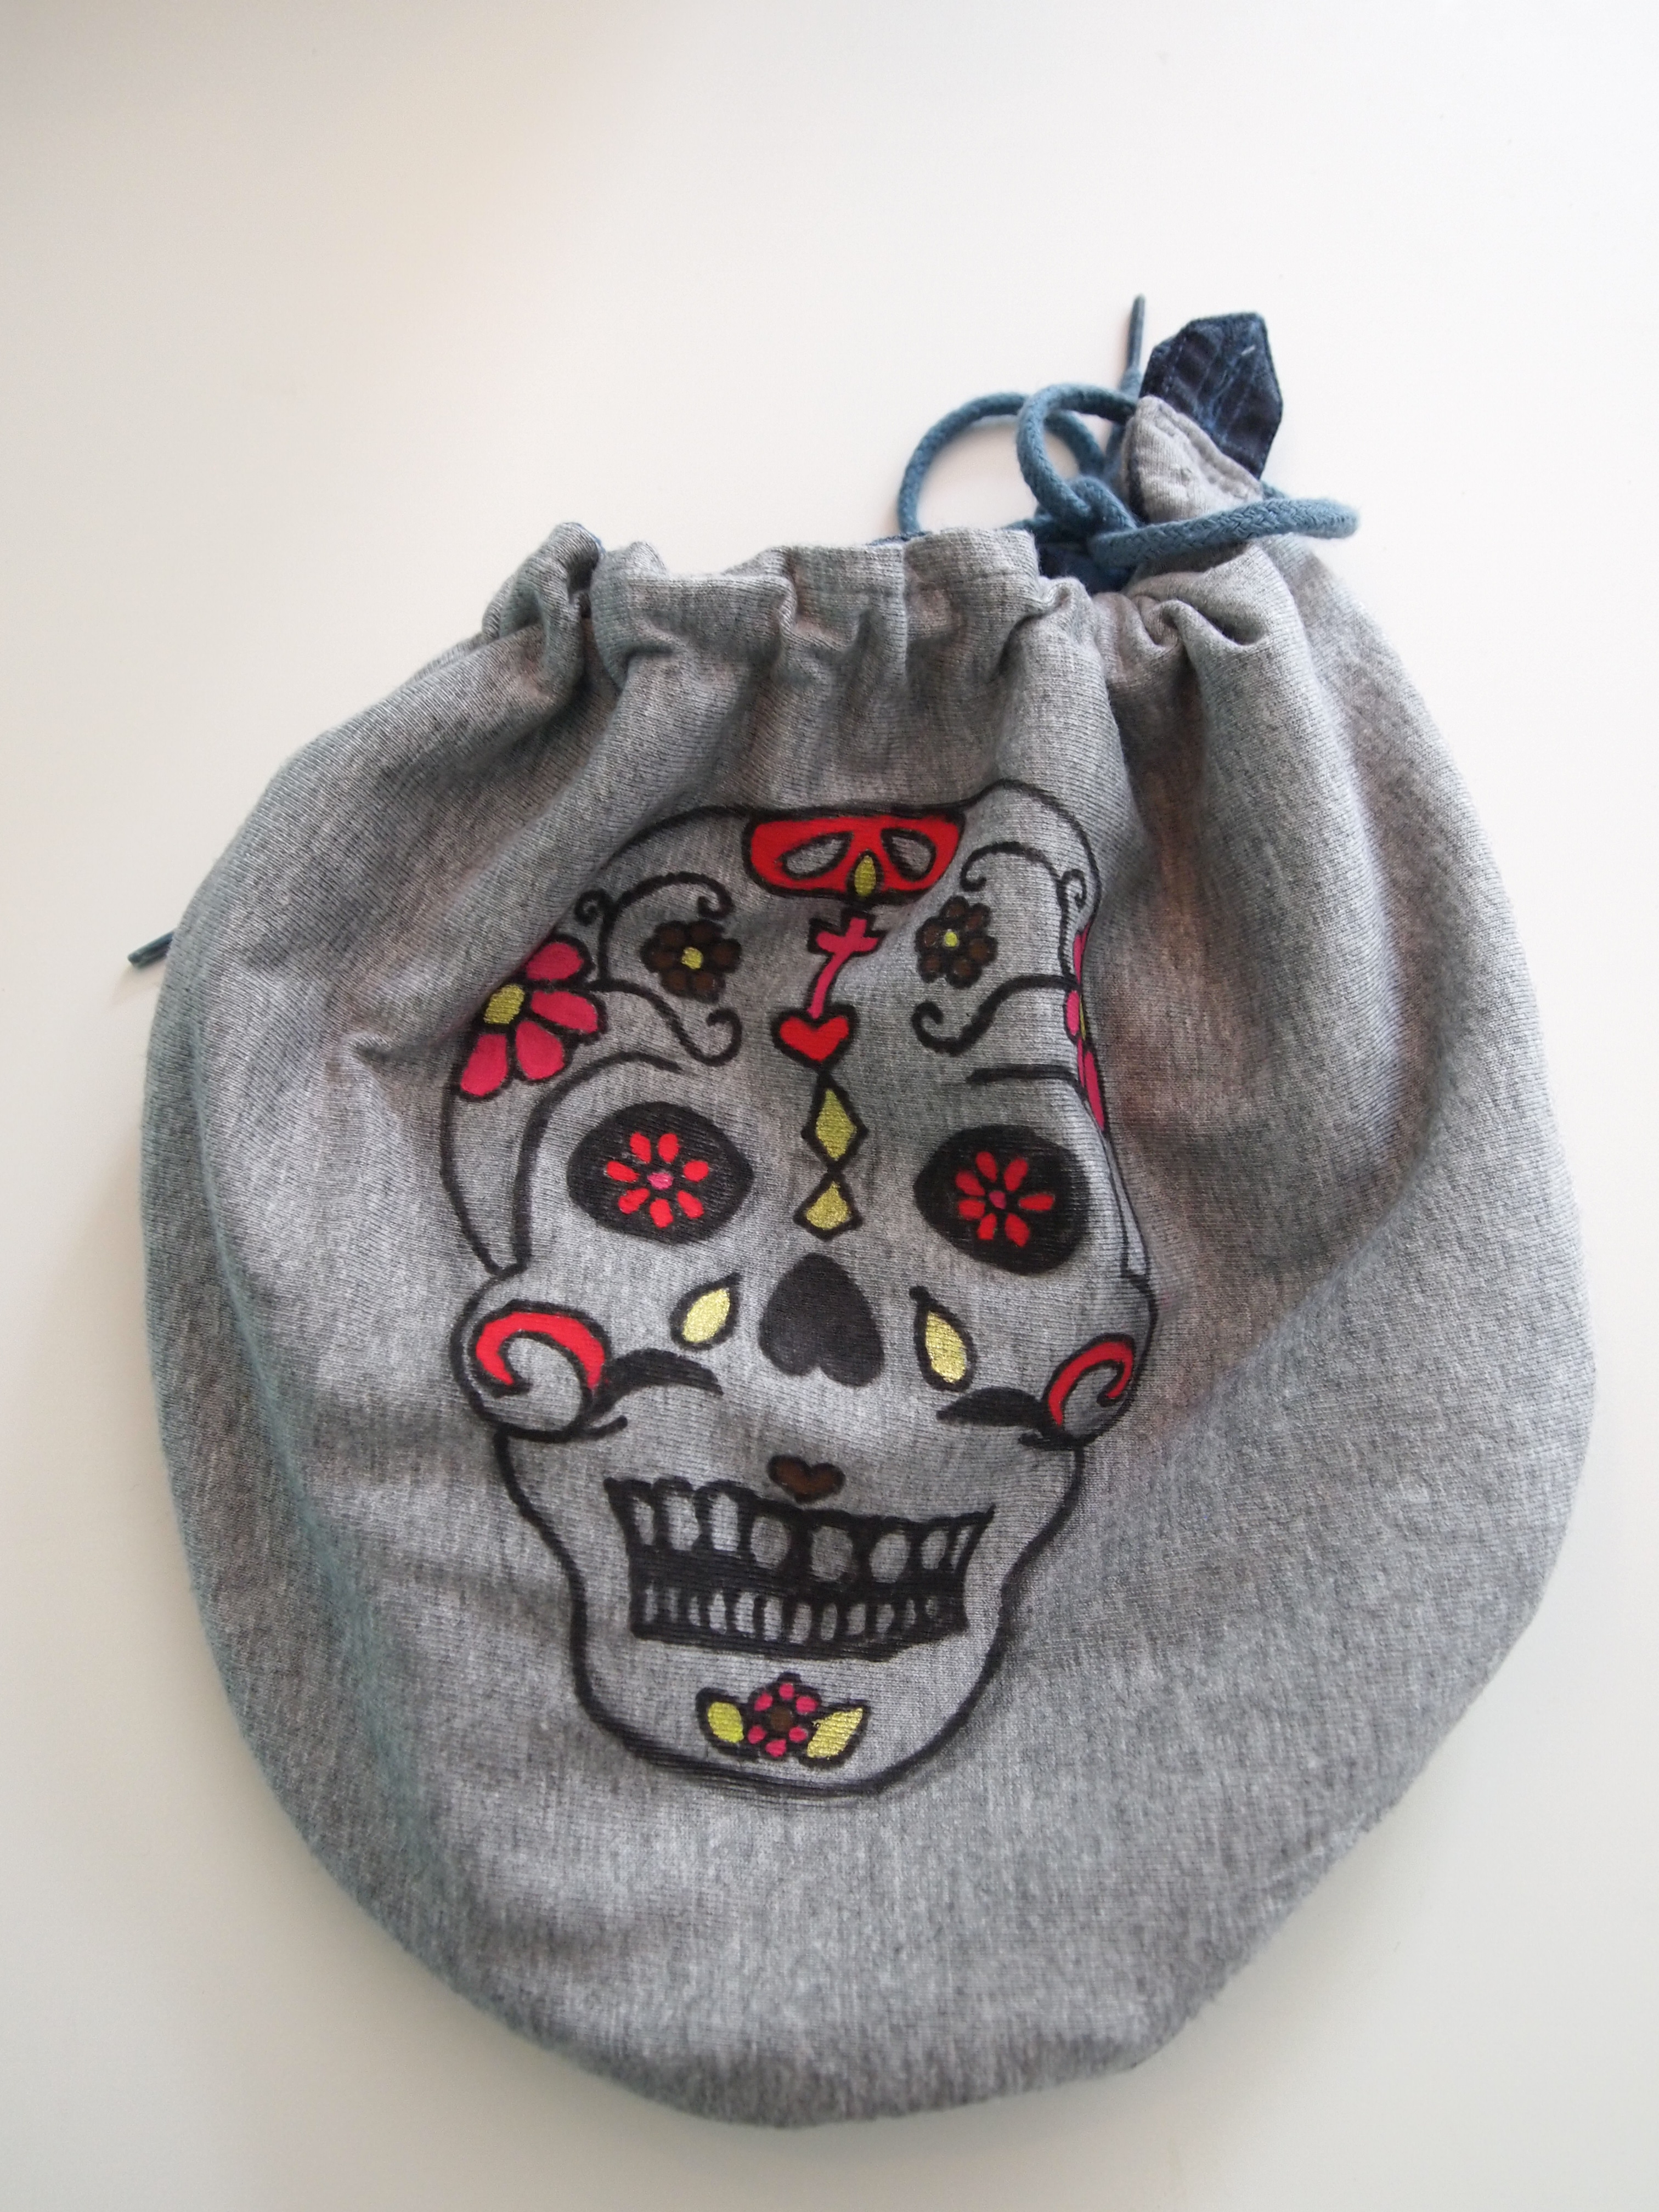 Day Of The Dead Skull Recycled Bag Sewing Projects